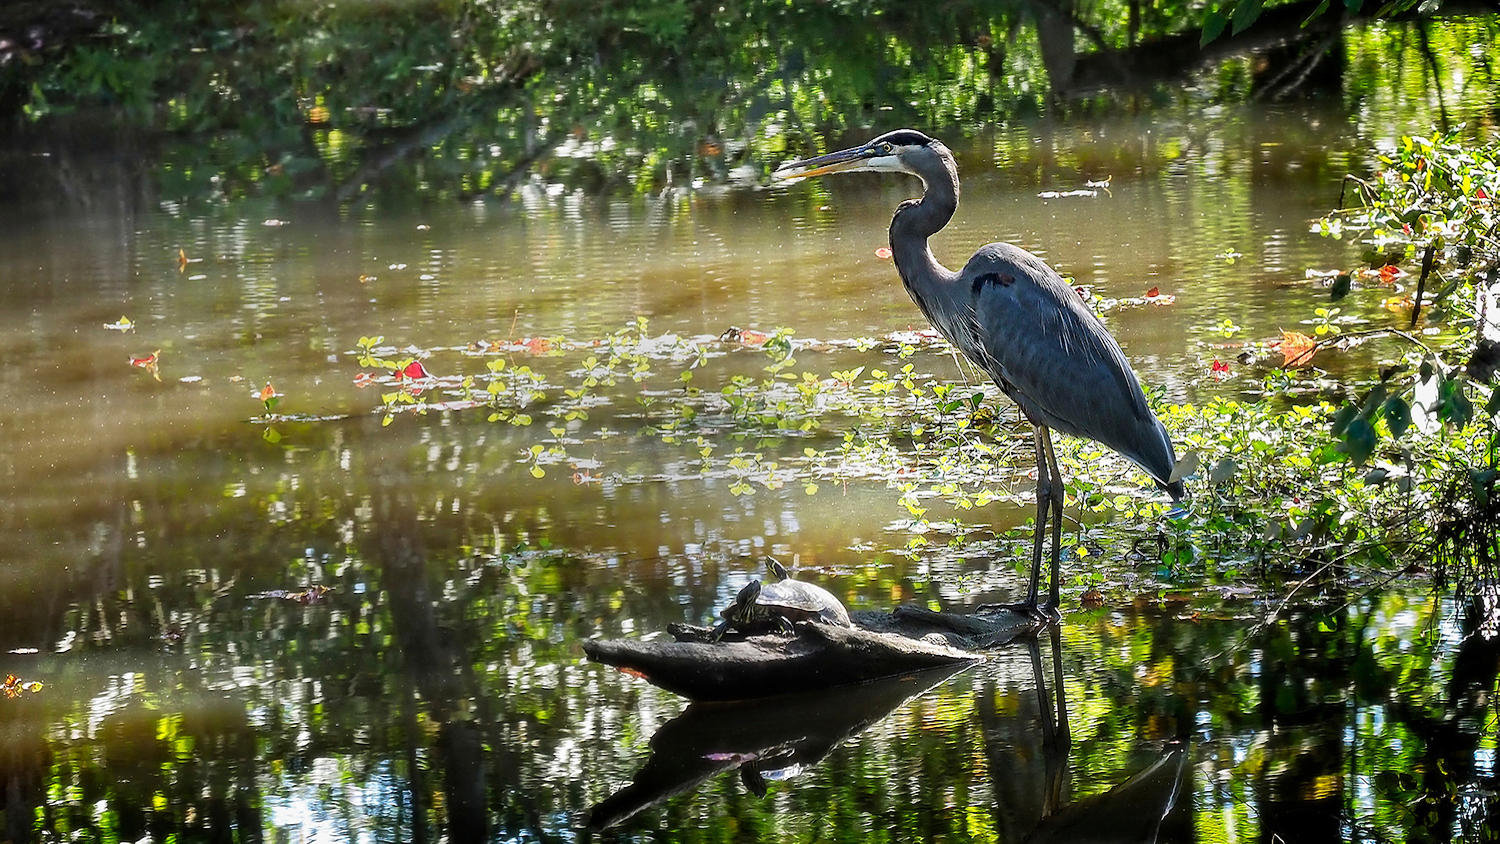 Bird at a Lake - Ecology Wildlife Foundation Establishes Three Funds to Support Conservation Research - College of Natural Resources News NC State University